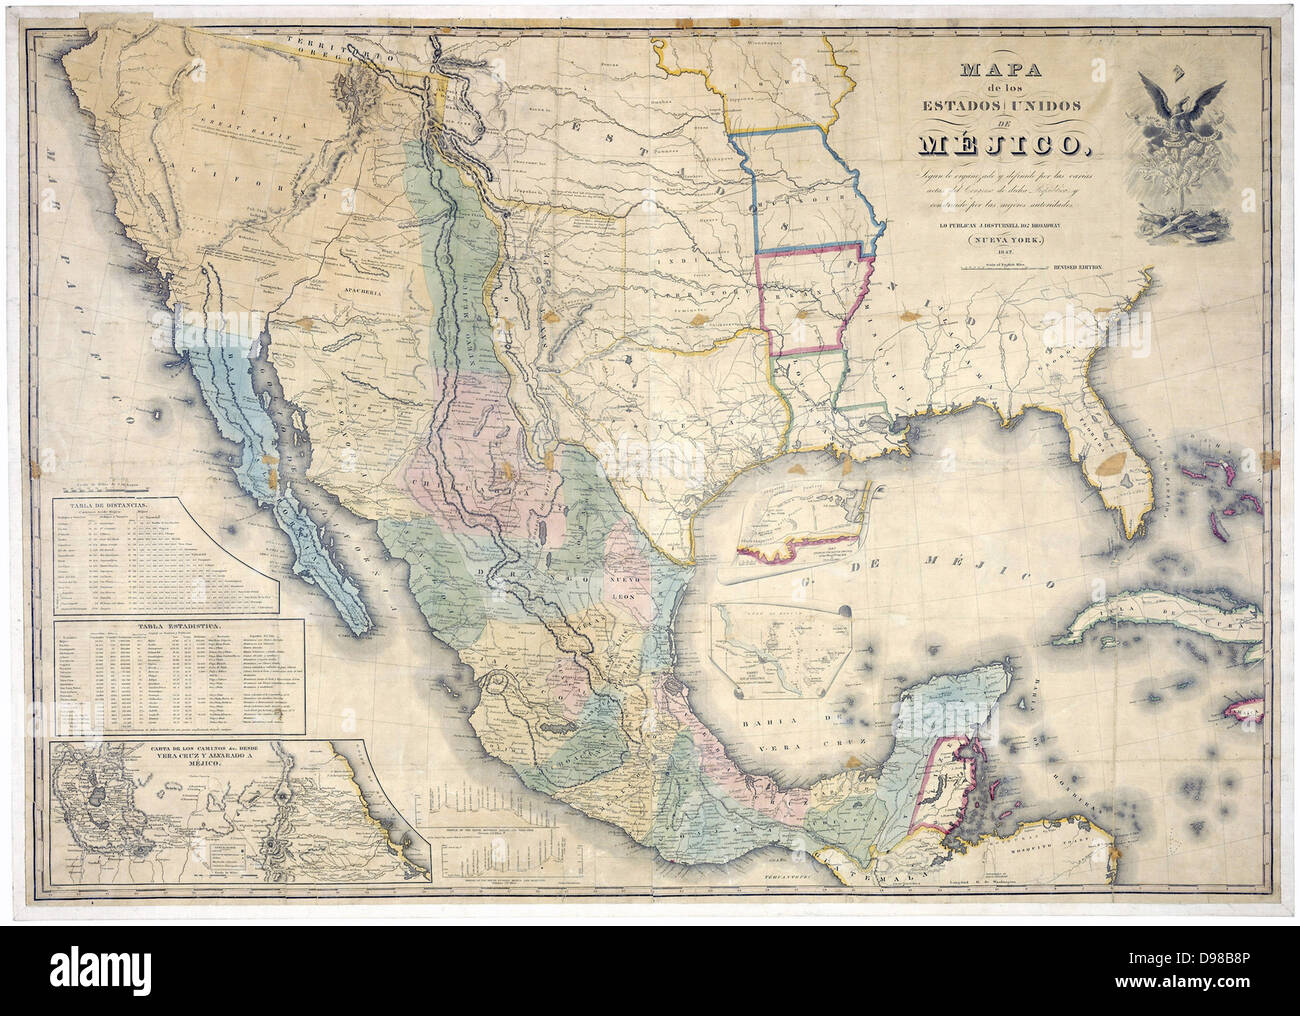 United States Map 1848 Stock Photos & United States Map 1848 ... on europe map 1848, united states presidential election 1848, united states of america, california map 1848, united states in 1846, mexican cession map 1848, united states elevation, us history map 1848, united states borders before 1848,